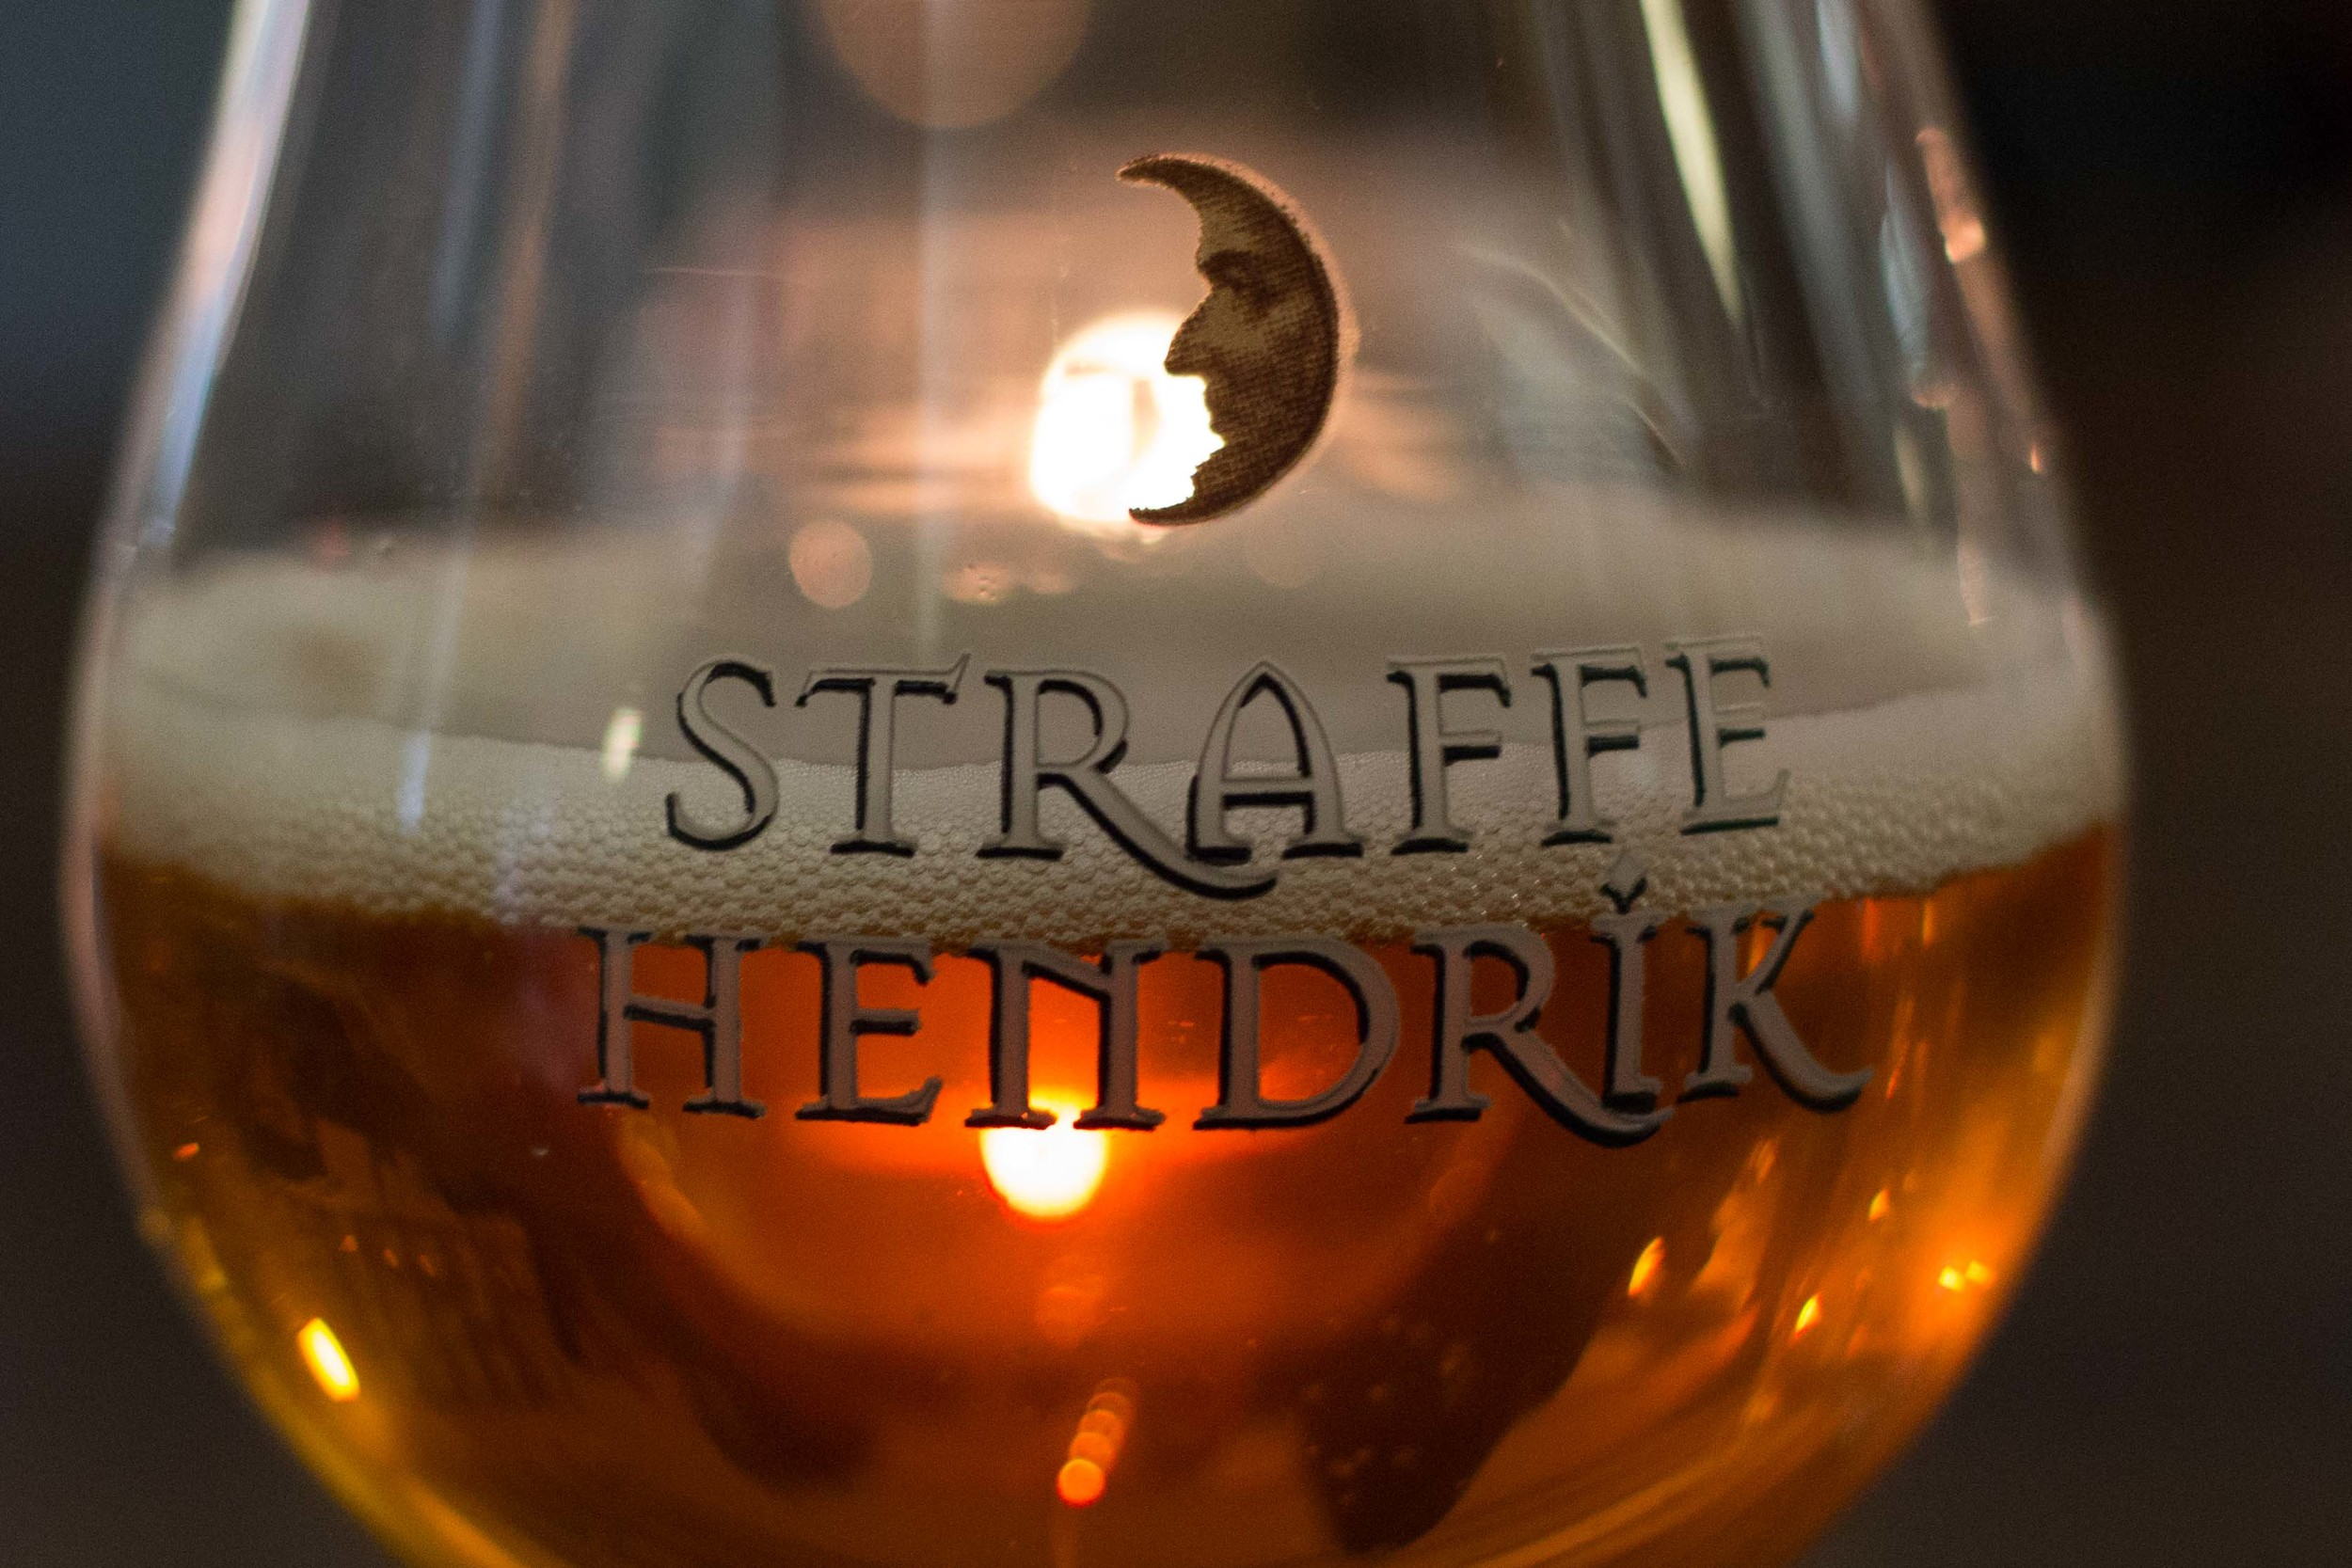 More Beer tasting! This time, the Straffe Hendrik Trippel